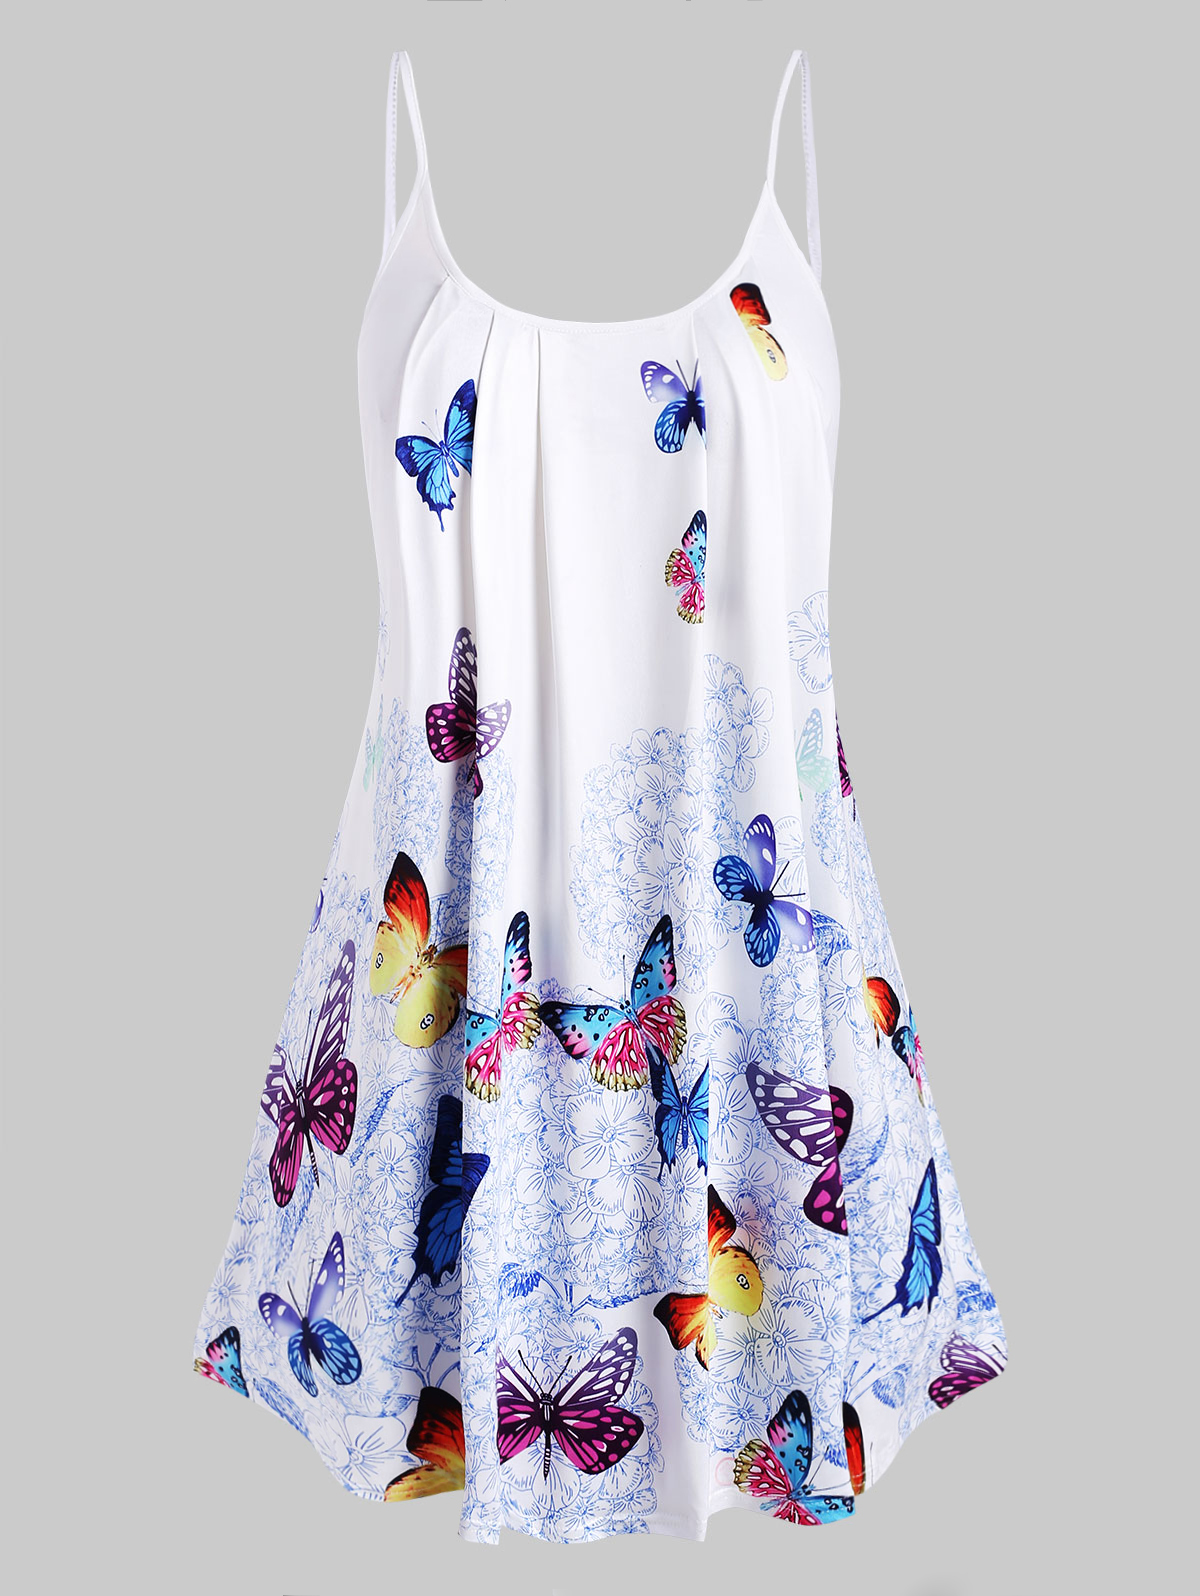 Wipalo Spaghetti Strap Plus Size Butterfly Print Cami Top Women Camis 2019 Fashion Summer Sleeveless Tees Women Clothes